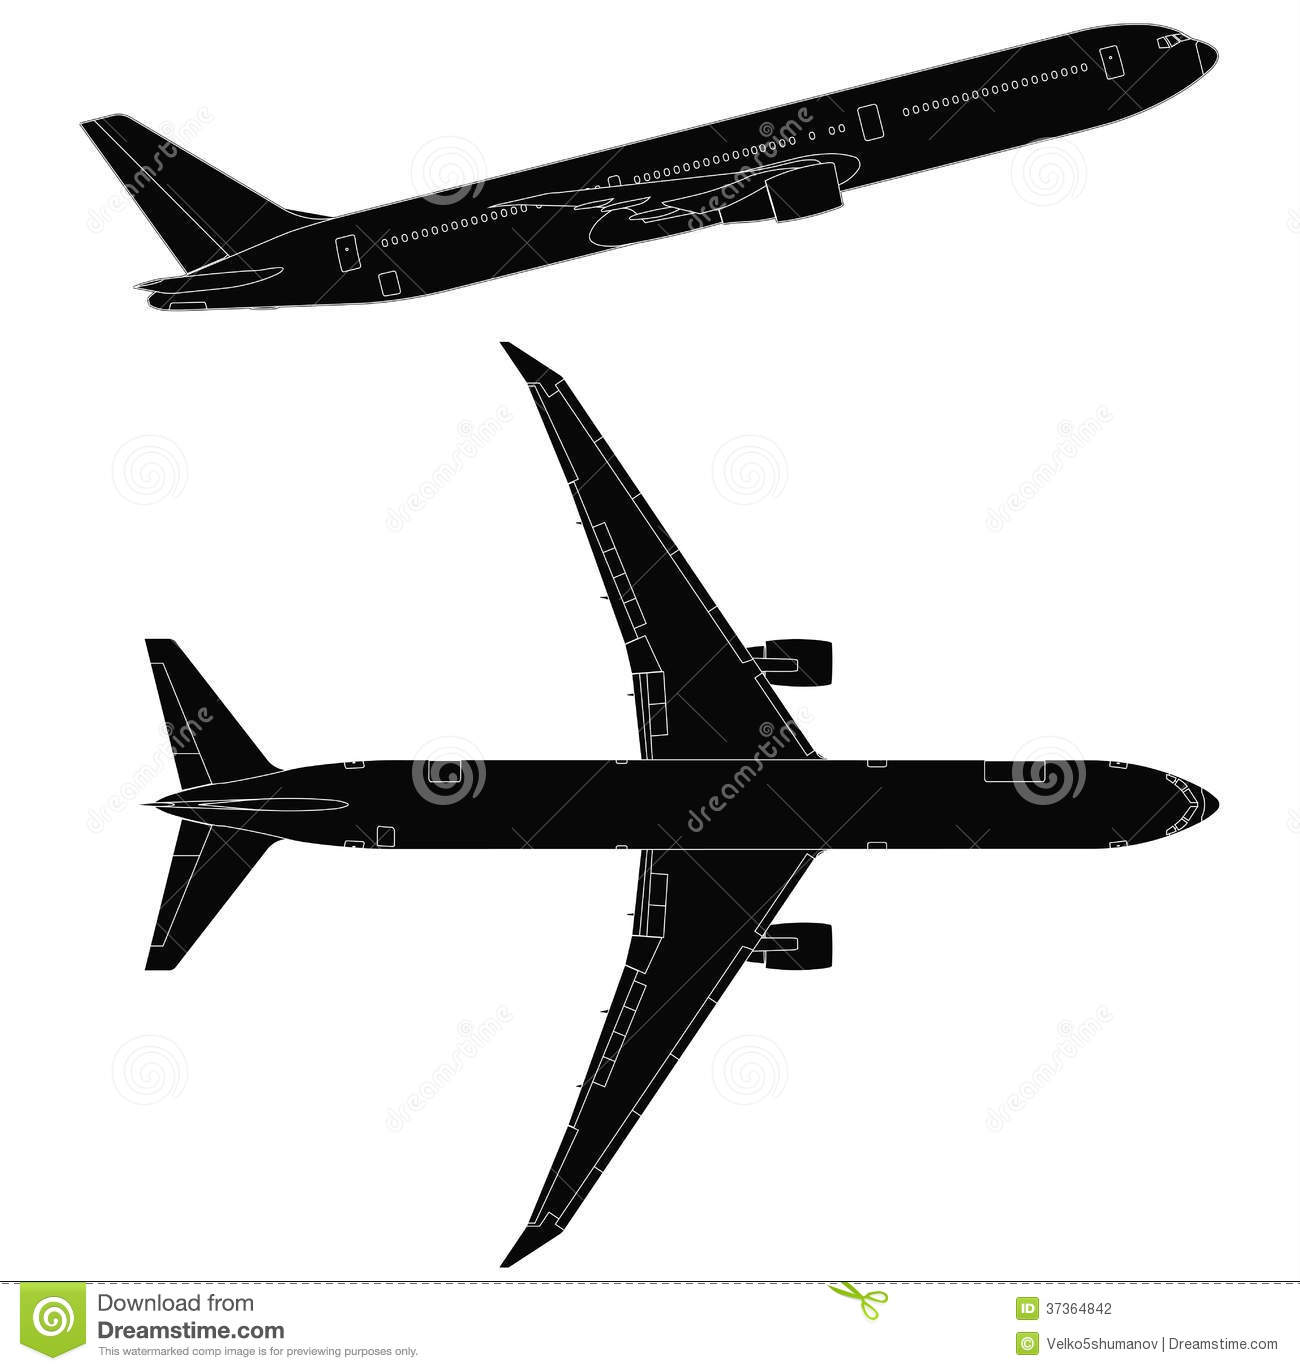 Airplane clipart side view.